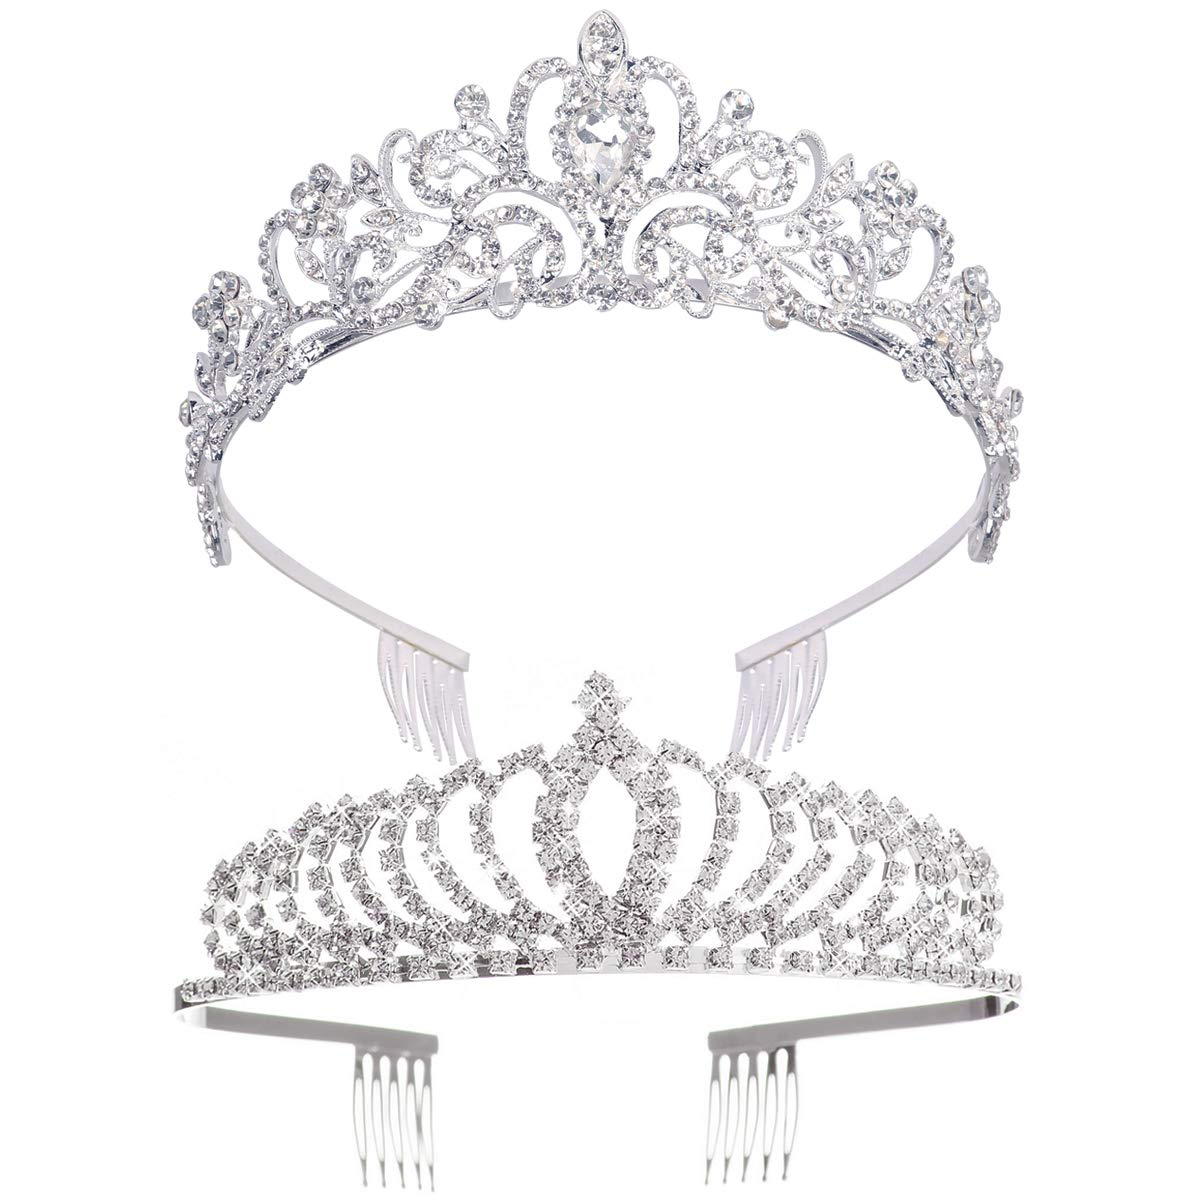 Didder Don't miss the campaign Silver Crystal Tiara Crown for Pack 2 Prin Limited price sale Headband Women